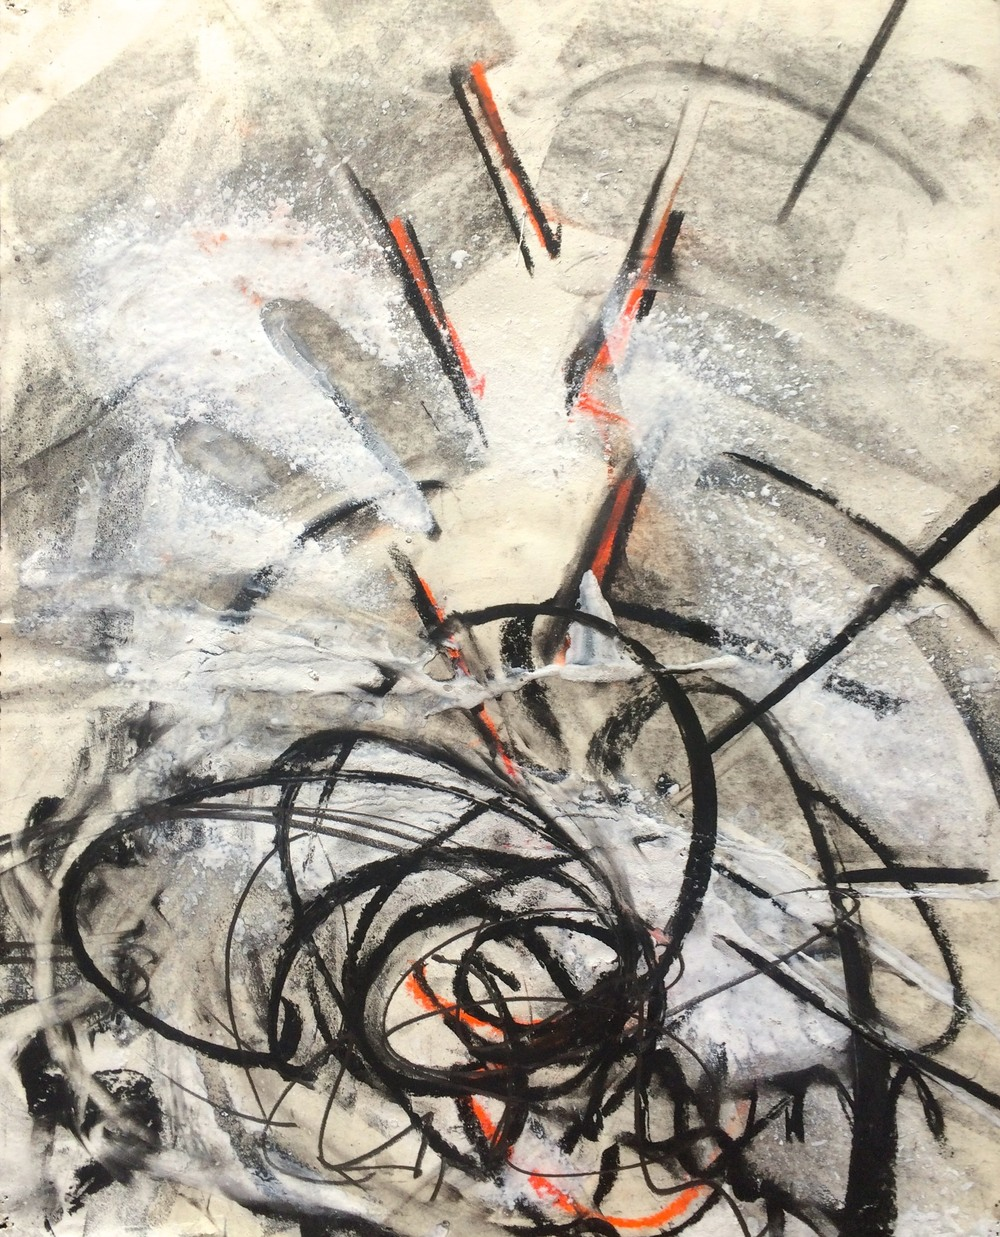 "Untitled 1990  1990, c  harcoal, acrylic, graphite, conte on paper; 17 x 13-3/4"" Collection  Beki Coagan/Damon Scharlatt; c opyright © Tennyson Woodbridge, 1963 to present"